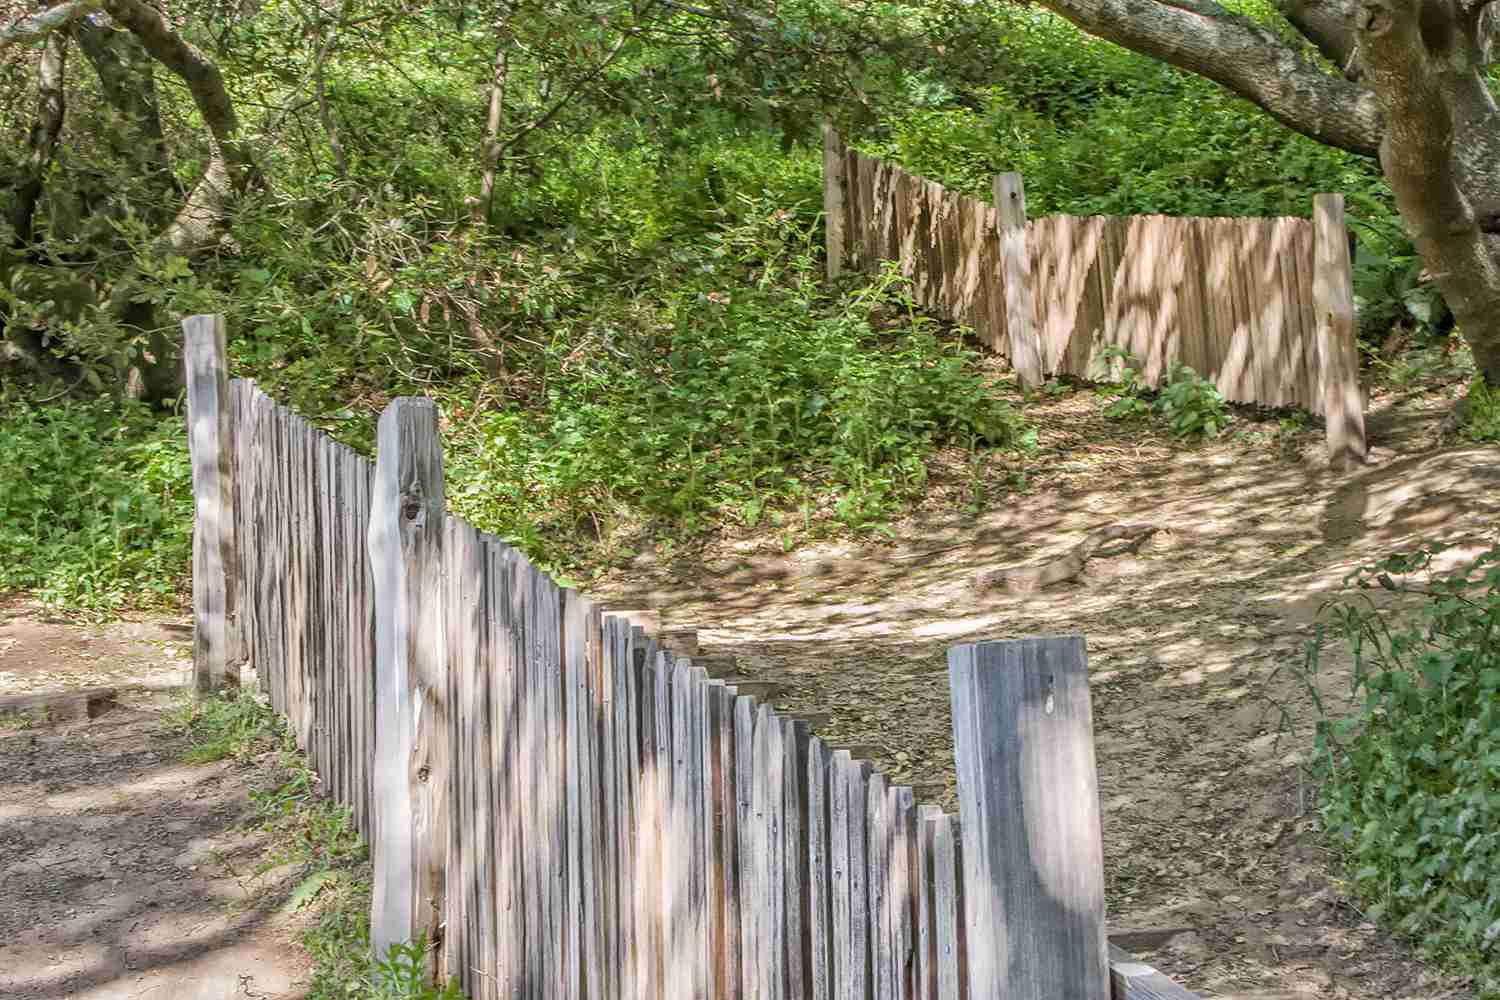 San Andreas Fault Splits a Fence at Point Reyes